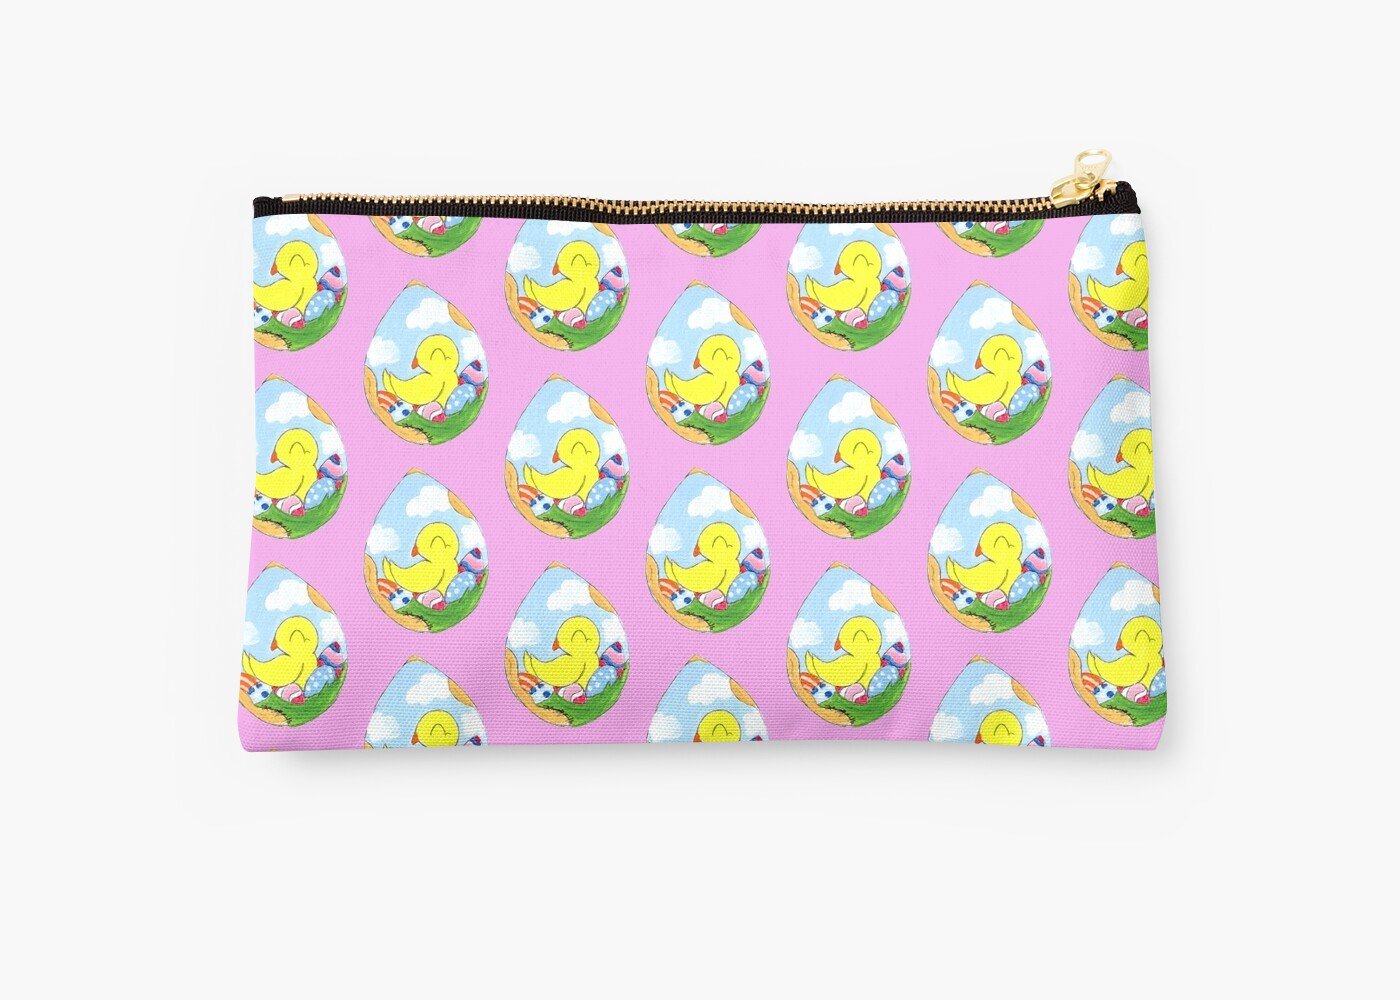 Home Decor Peabody Quot Egg Batch Quot Studio Pouches By Kokeefeart Redbubble